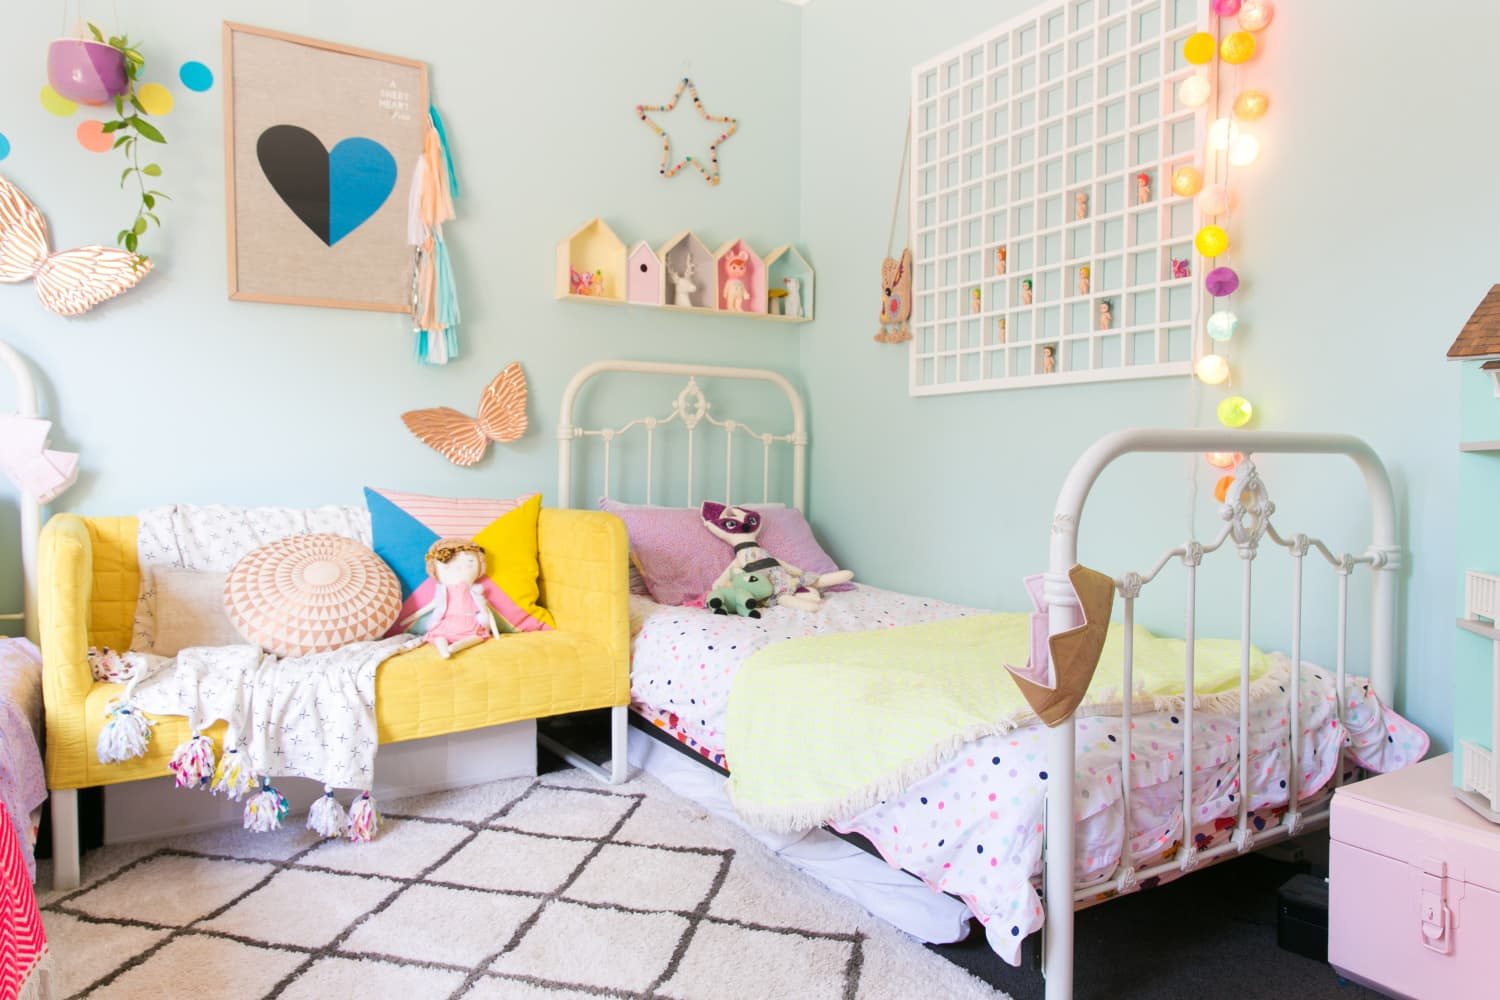 Smart Design Ideas to Steal from Kids' Rooms